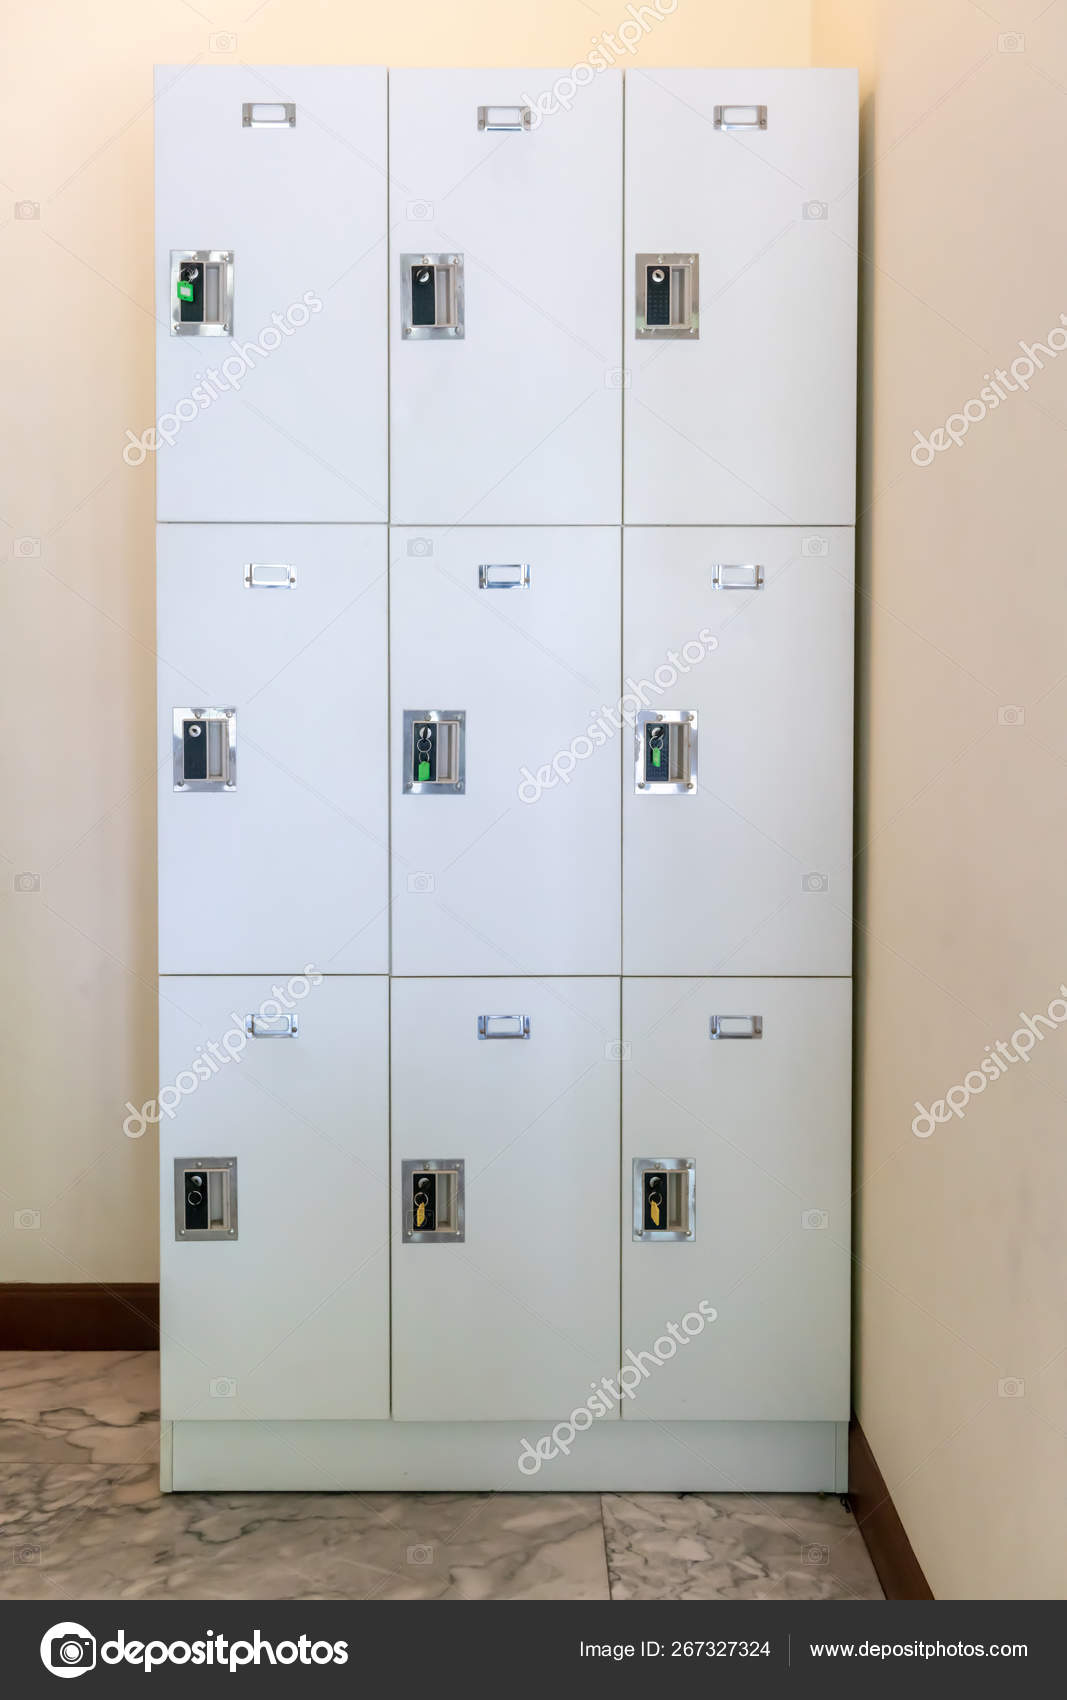 Close Up On Lockers In Gym Against White Background Stock Photo C V74 267327324